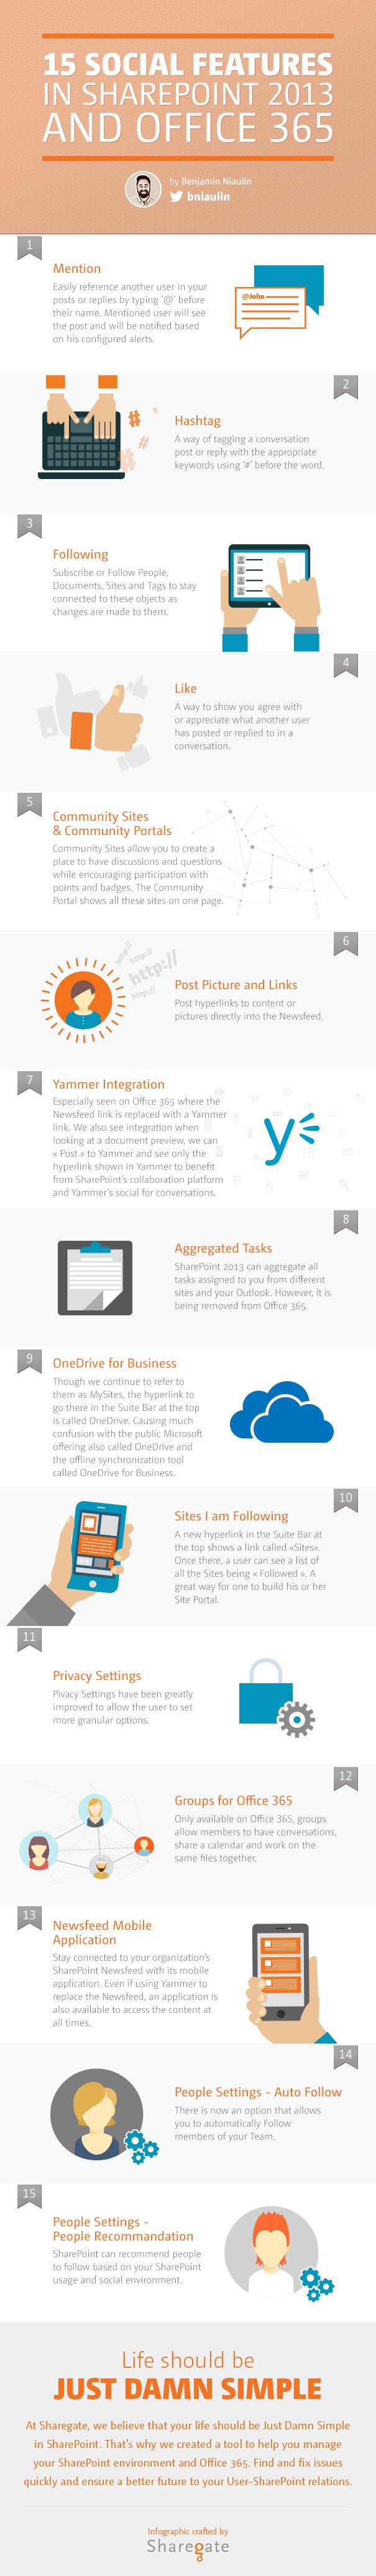 Top social features in SharePoint 2013 and Office 365